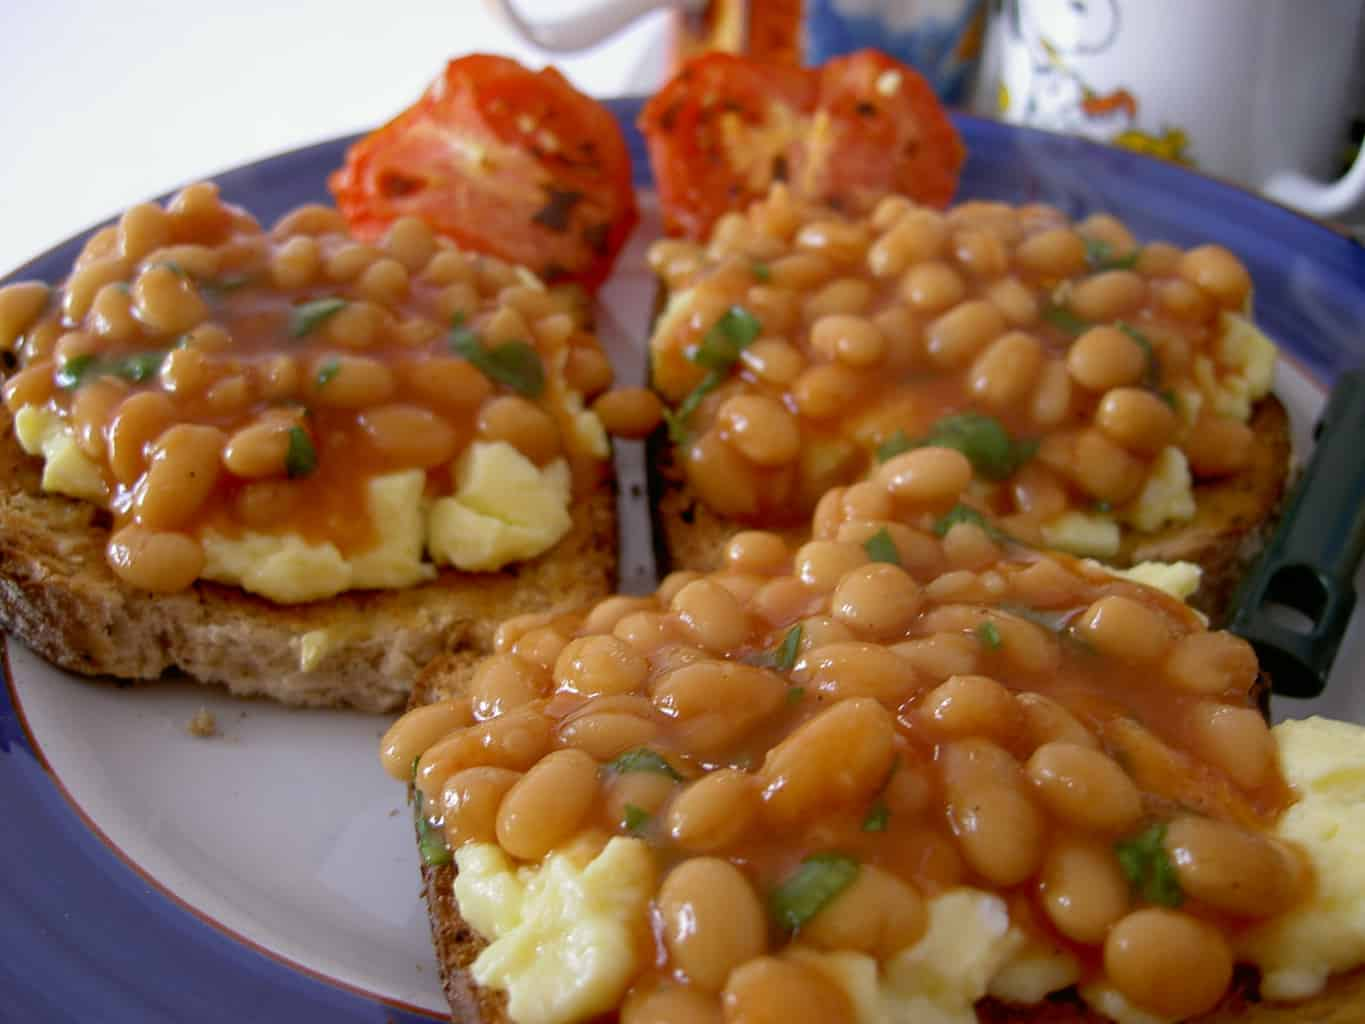 Beans and eggs on toast with tomatoes in the background